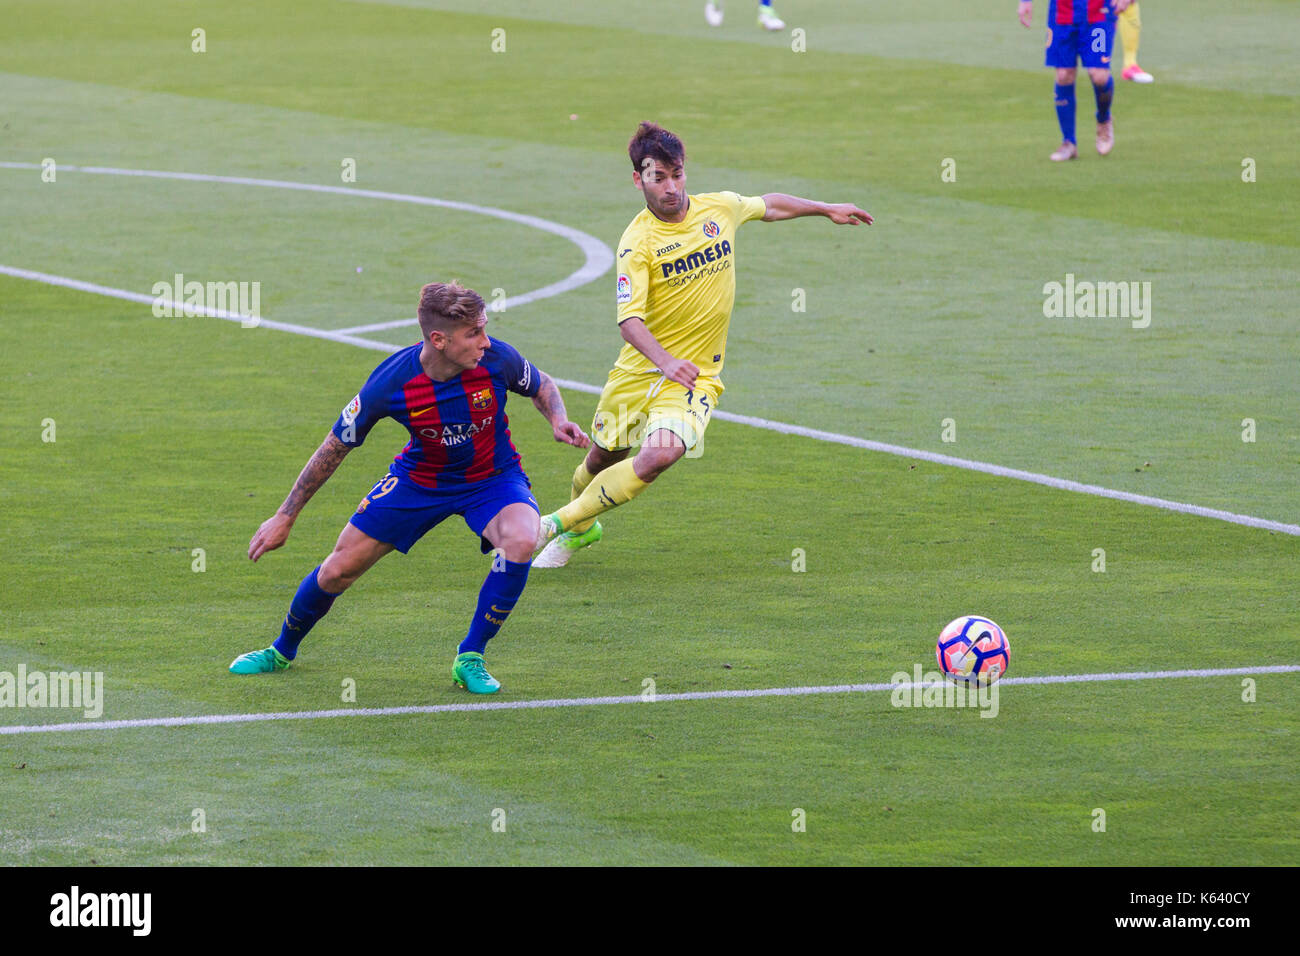 Lucas Digne competing for ball - 6/5/17 Barcelona v Villarreal football league match at the Camp Nou stadium, Barcelona. - Stock Image